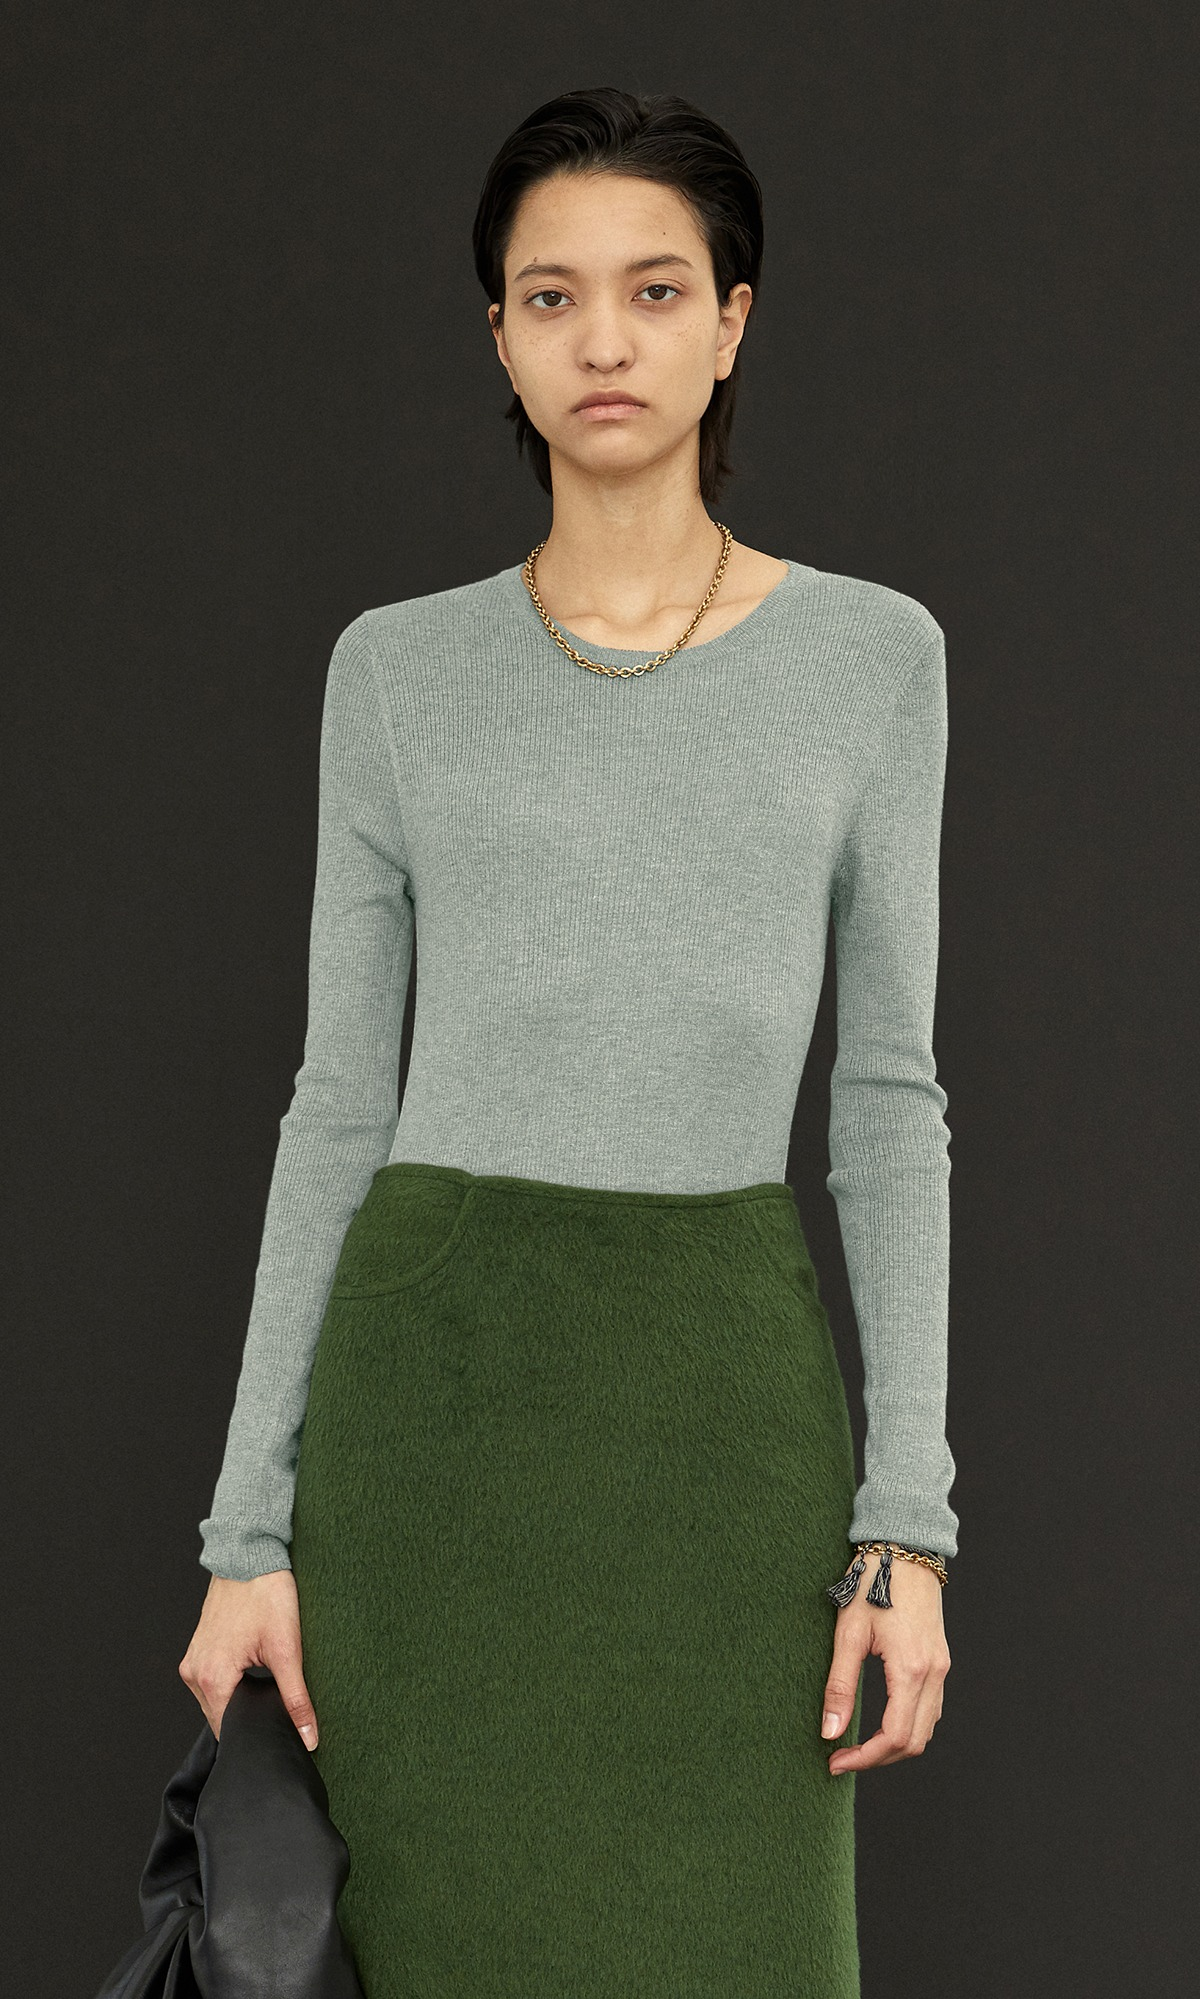 Kelli Cashmere Knit_Mint+Dark Gray